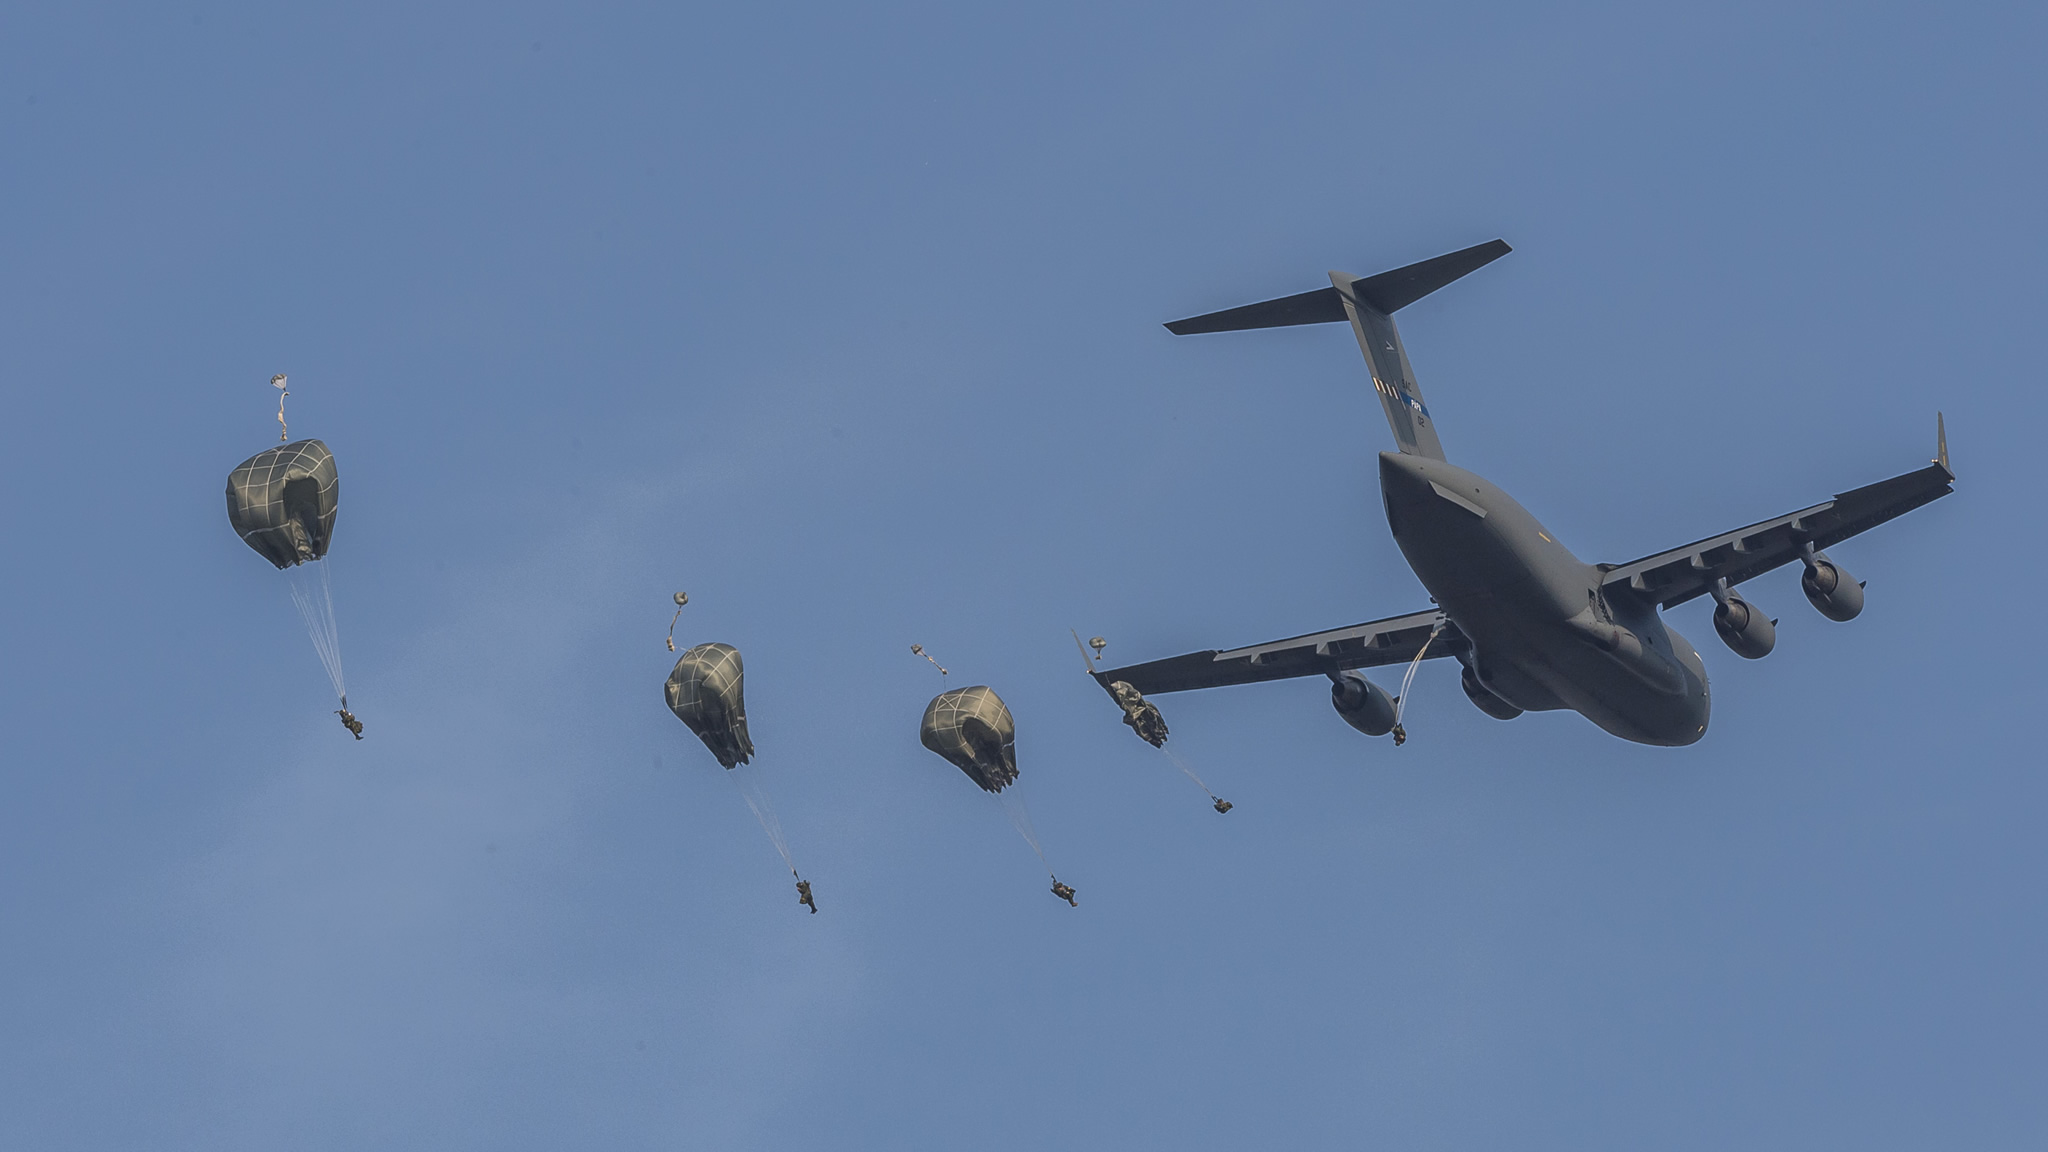 Hohenfels, Germany. 13 August 2015 – Canadian paratroopers jump from a C-130J Hercules aircraft during a joint parachuting exercise at the Joint Multinational Readiness Center in Hohenfels, Germany, on August 13, 2015, during Operation REASSURANCE. (Photo: Corporal Nathan Moulton, Land Task Force Imagery)